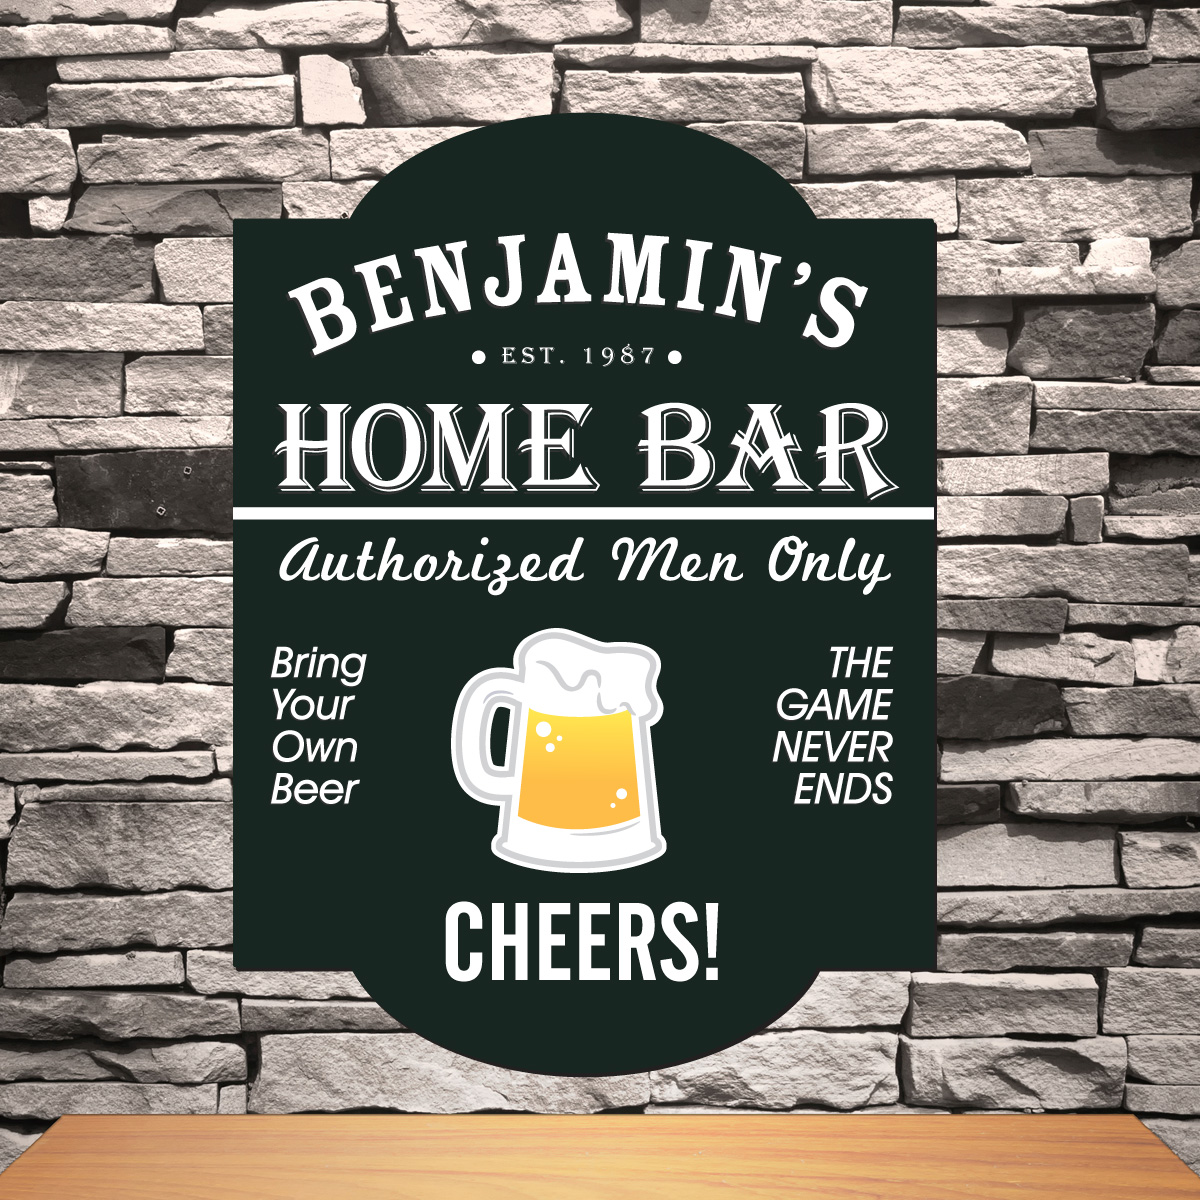 personalized-vintage-pub-signs-nfl-cheerleaders-pussy-slip-images